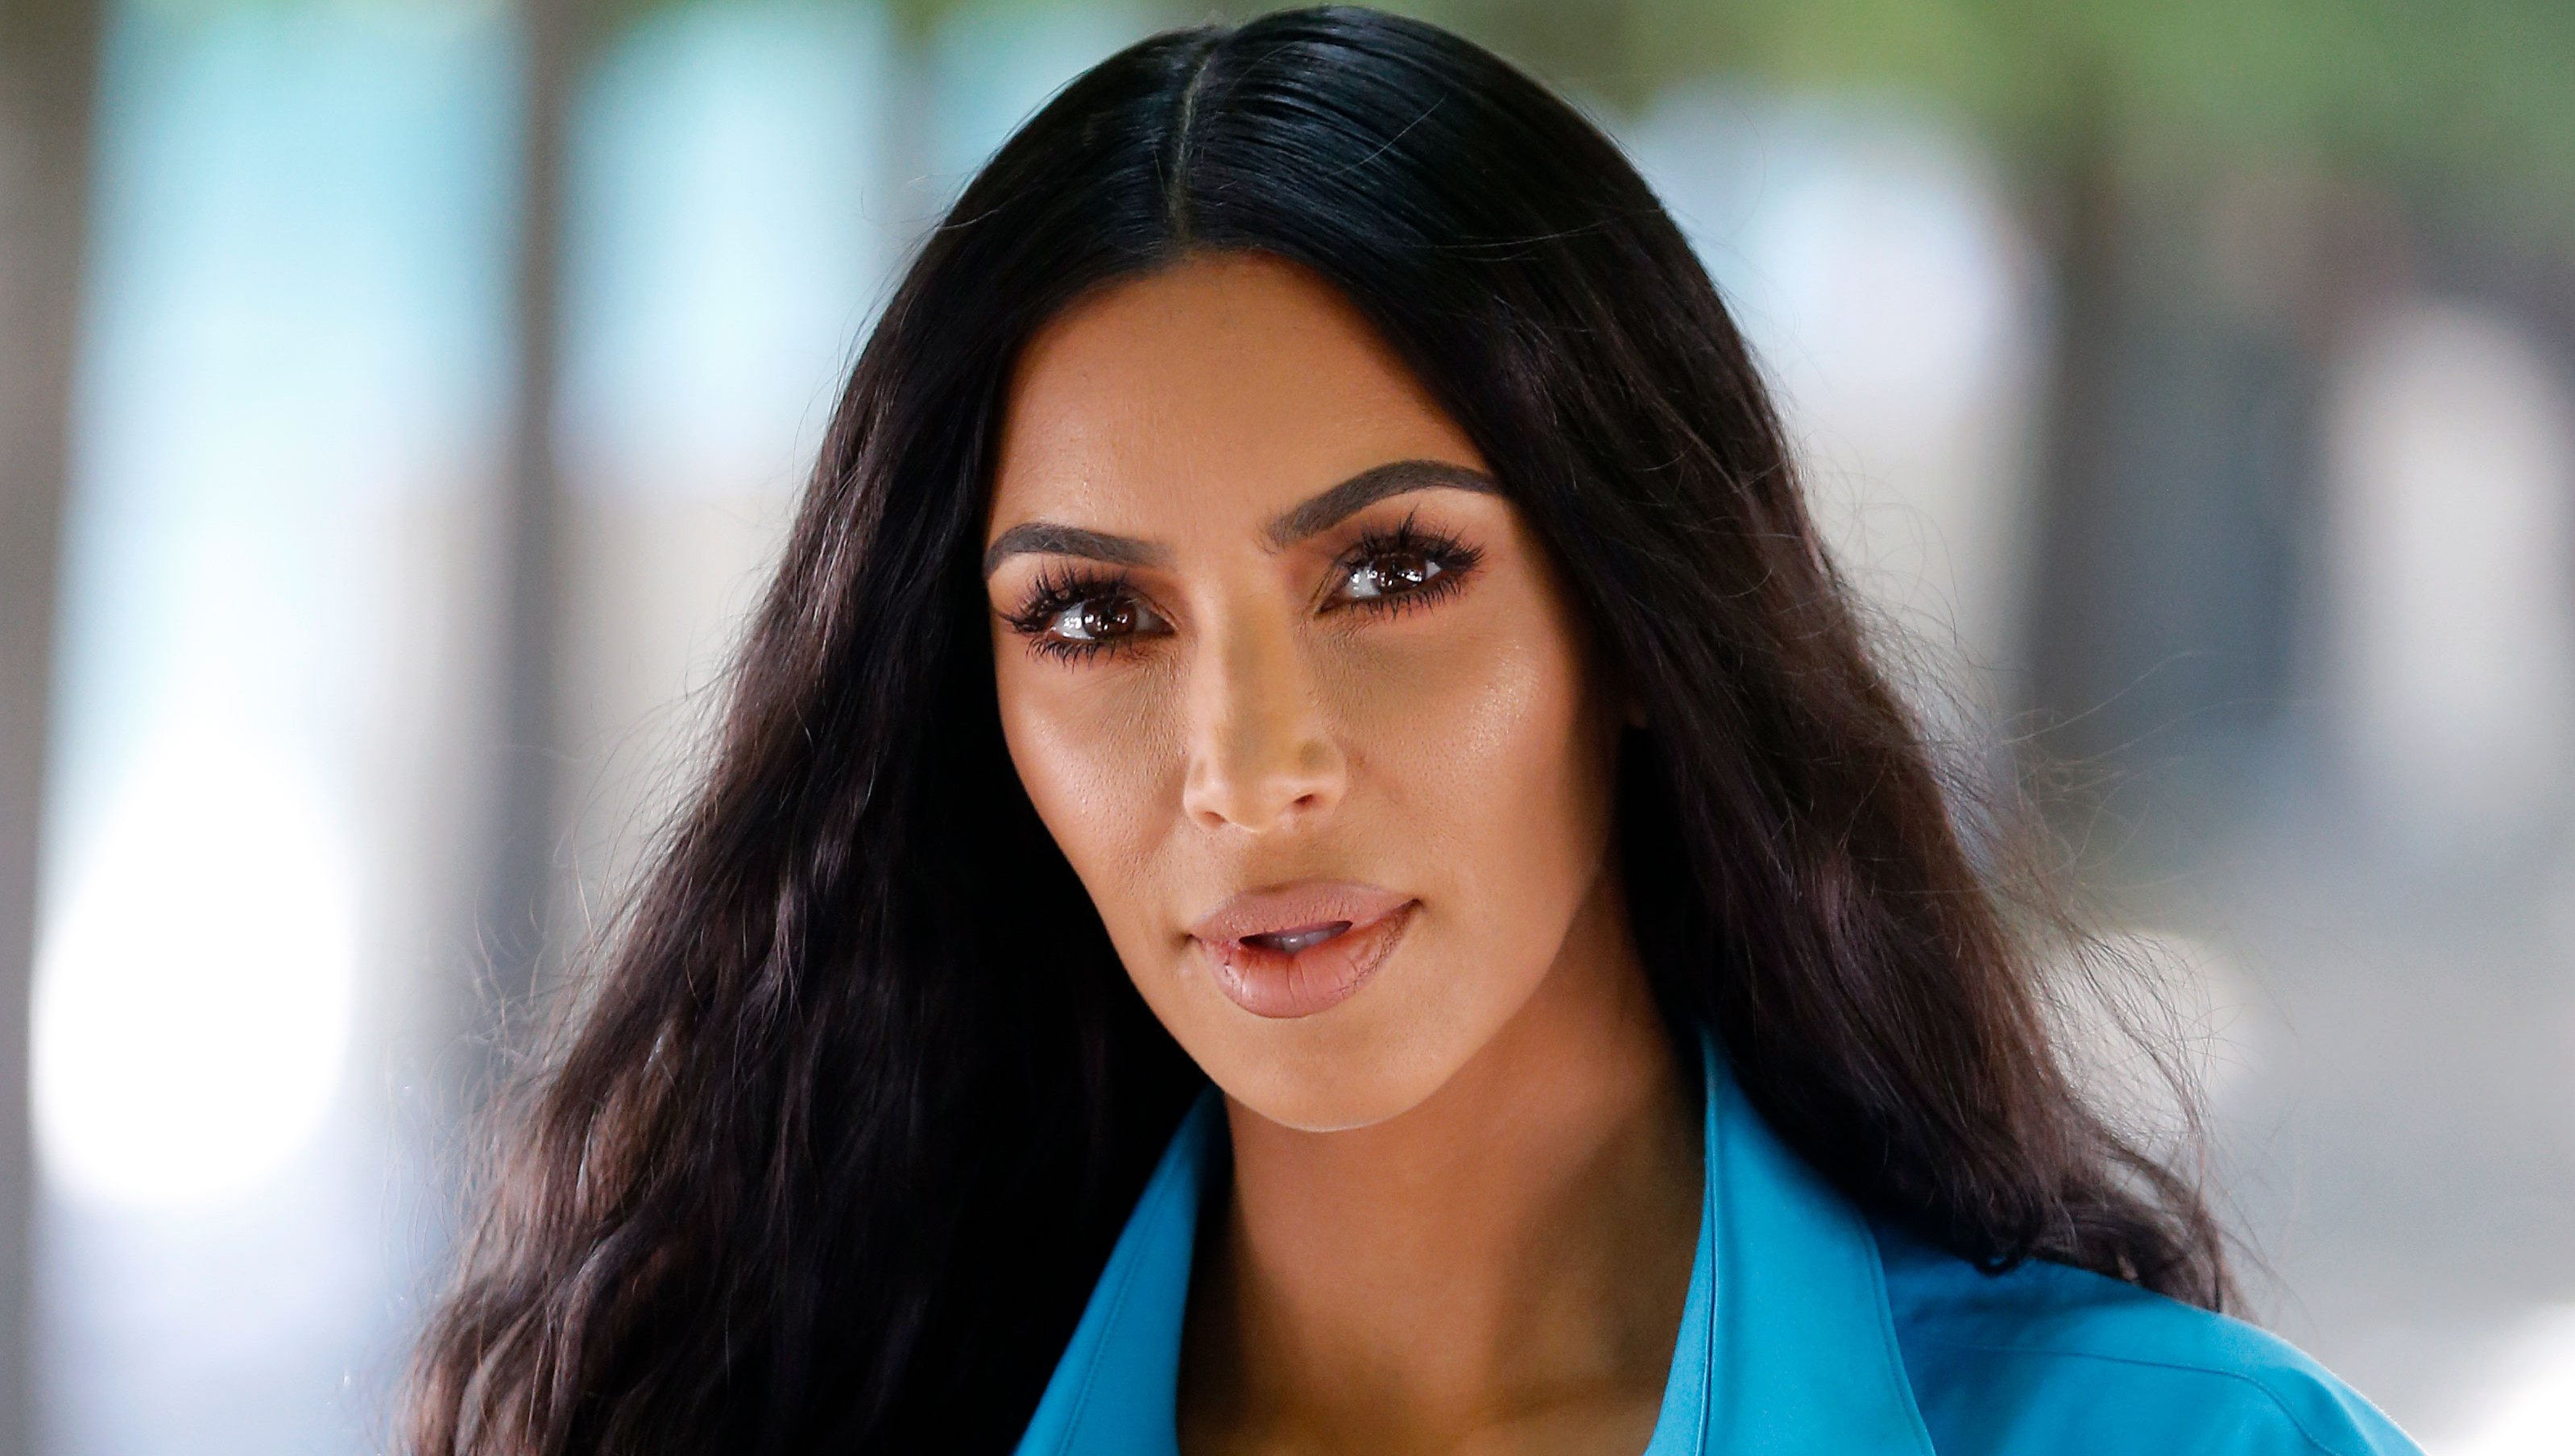 Kim Kardashian: 'I Would Never Want to Use Privilege' to Get My Kids Into College